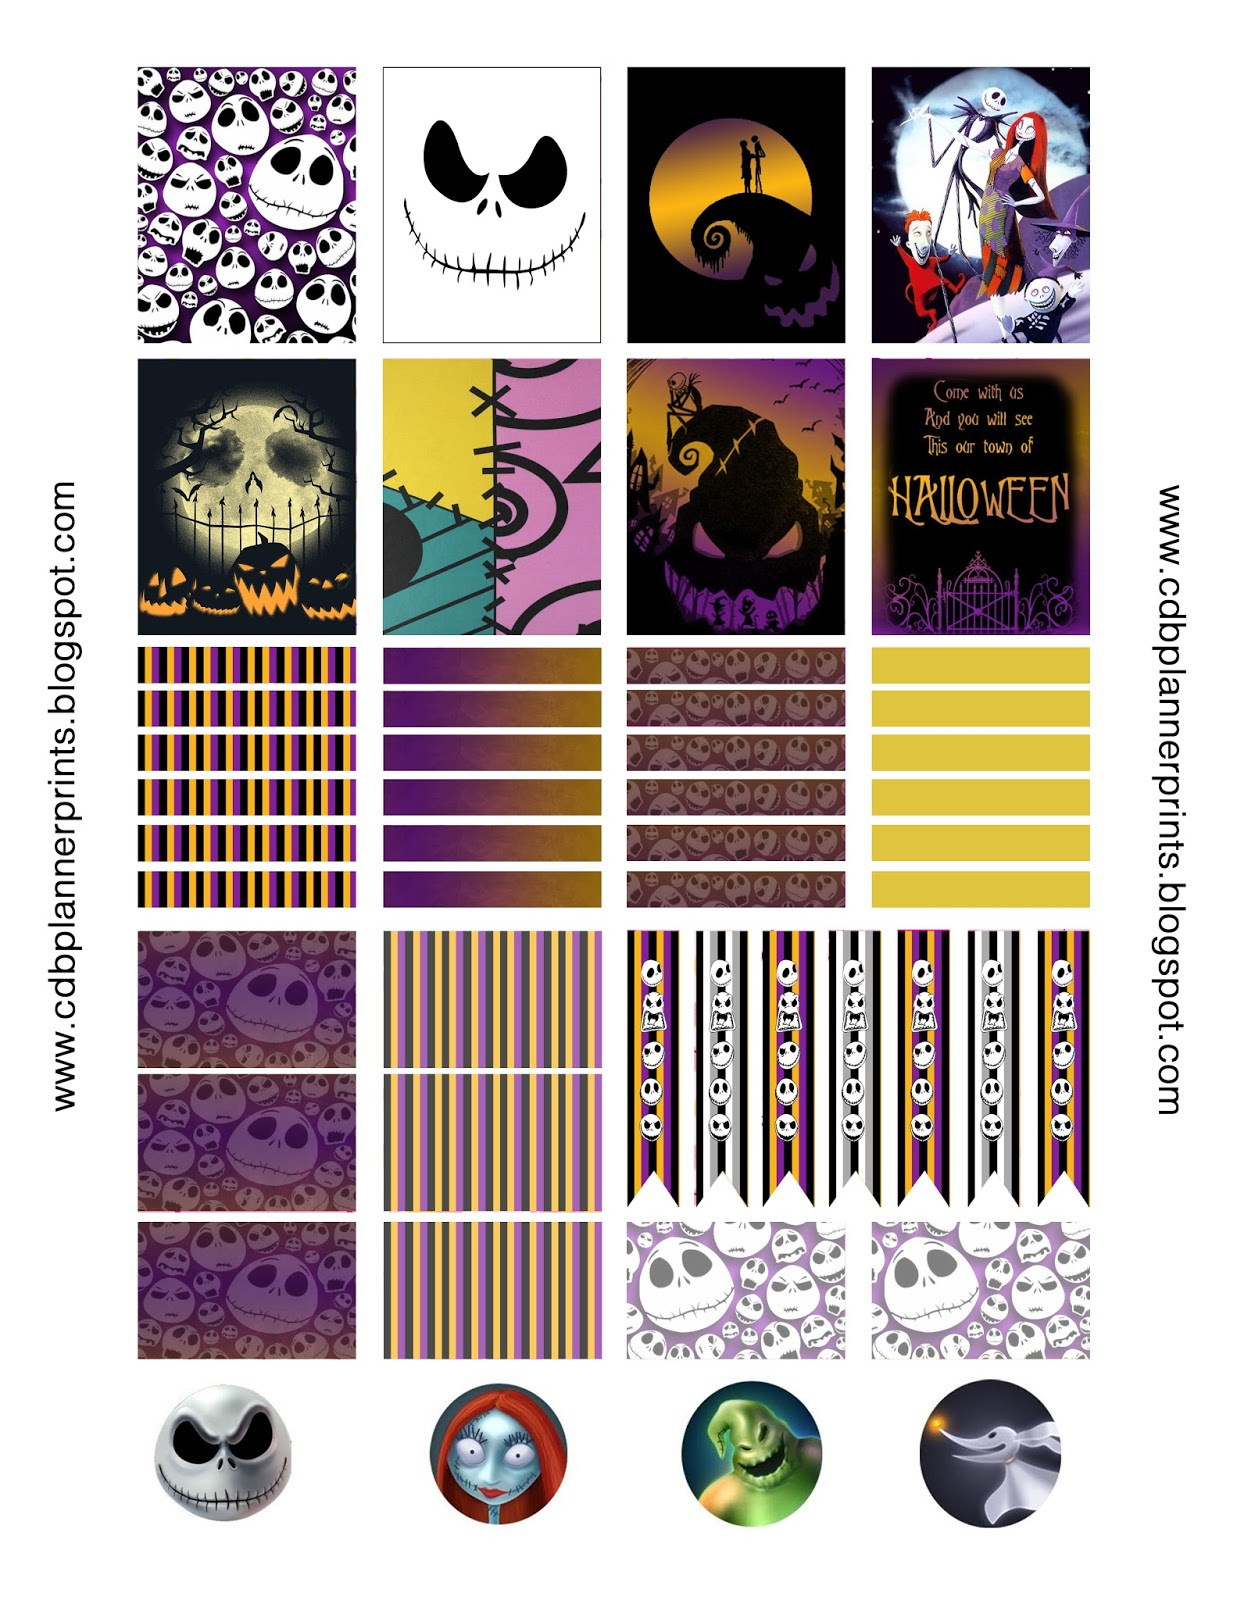 CDB Planner Prints: Nightmare Before Christmas